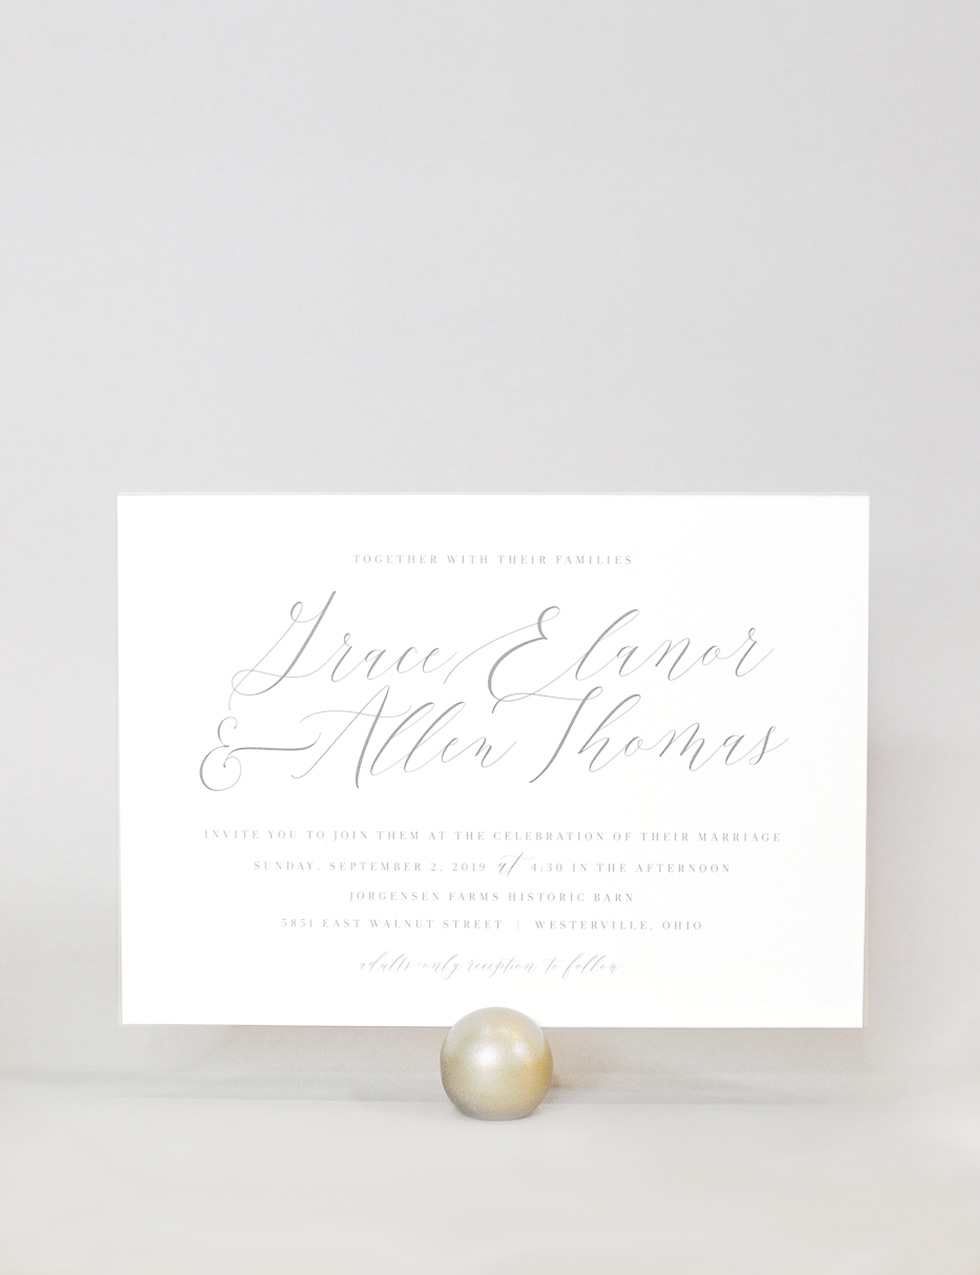 Dove - A perfectly simple, elegant suite. Beautiful calligraphy sets the tone for Dove. It's paired with a classic serif typeface that will let your guests know it's a classy affair.